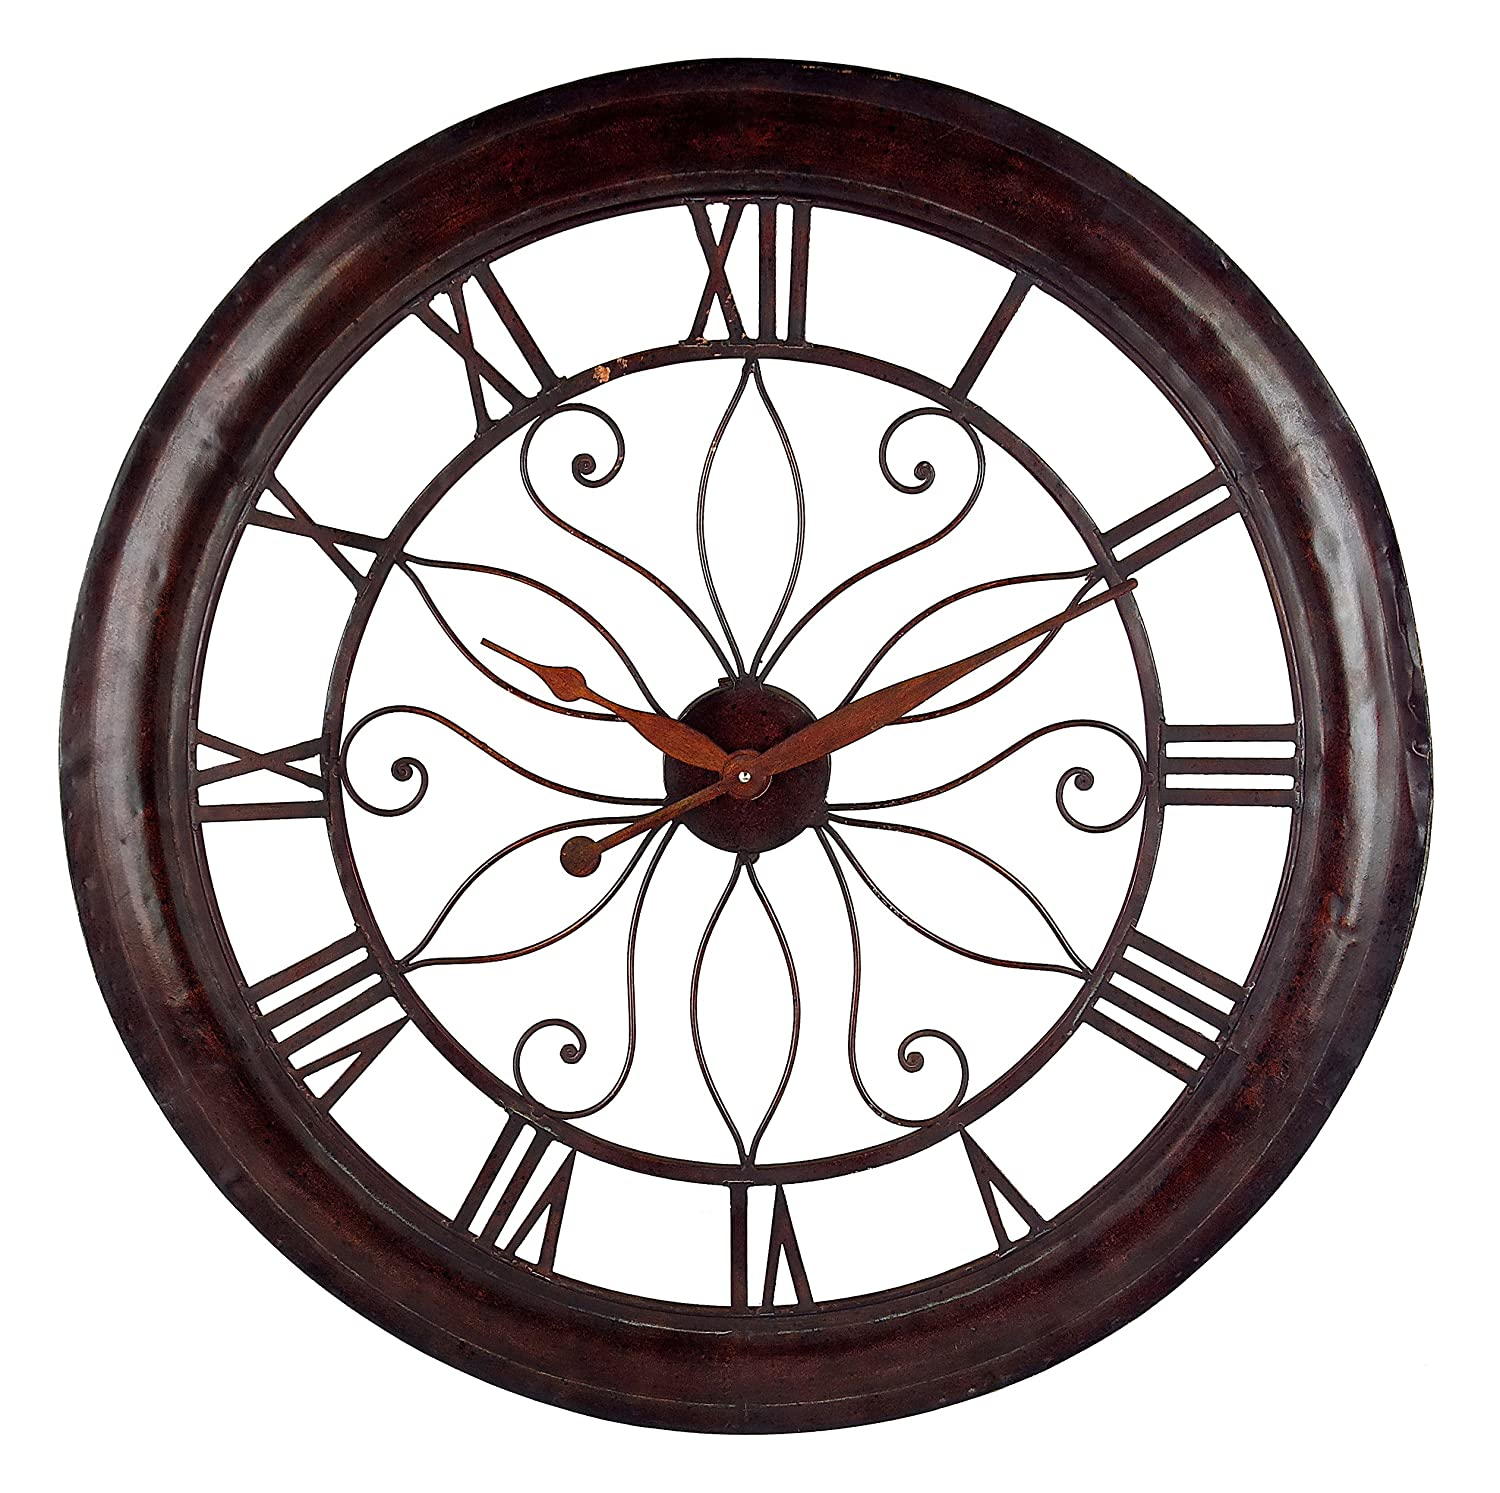 vibrant idea 30 inch clock. Amazon com  IMAX 1003 Oversized Wall Clock Open Back Round Analogue for Hotel Living Room Dining Modern Clocks Home